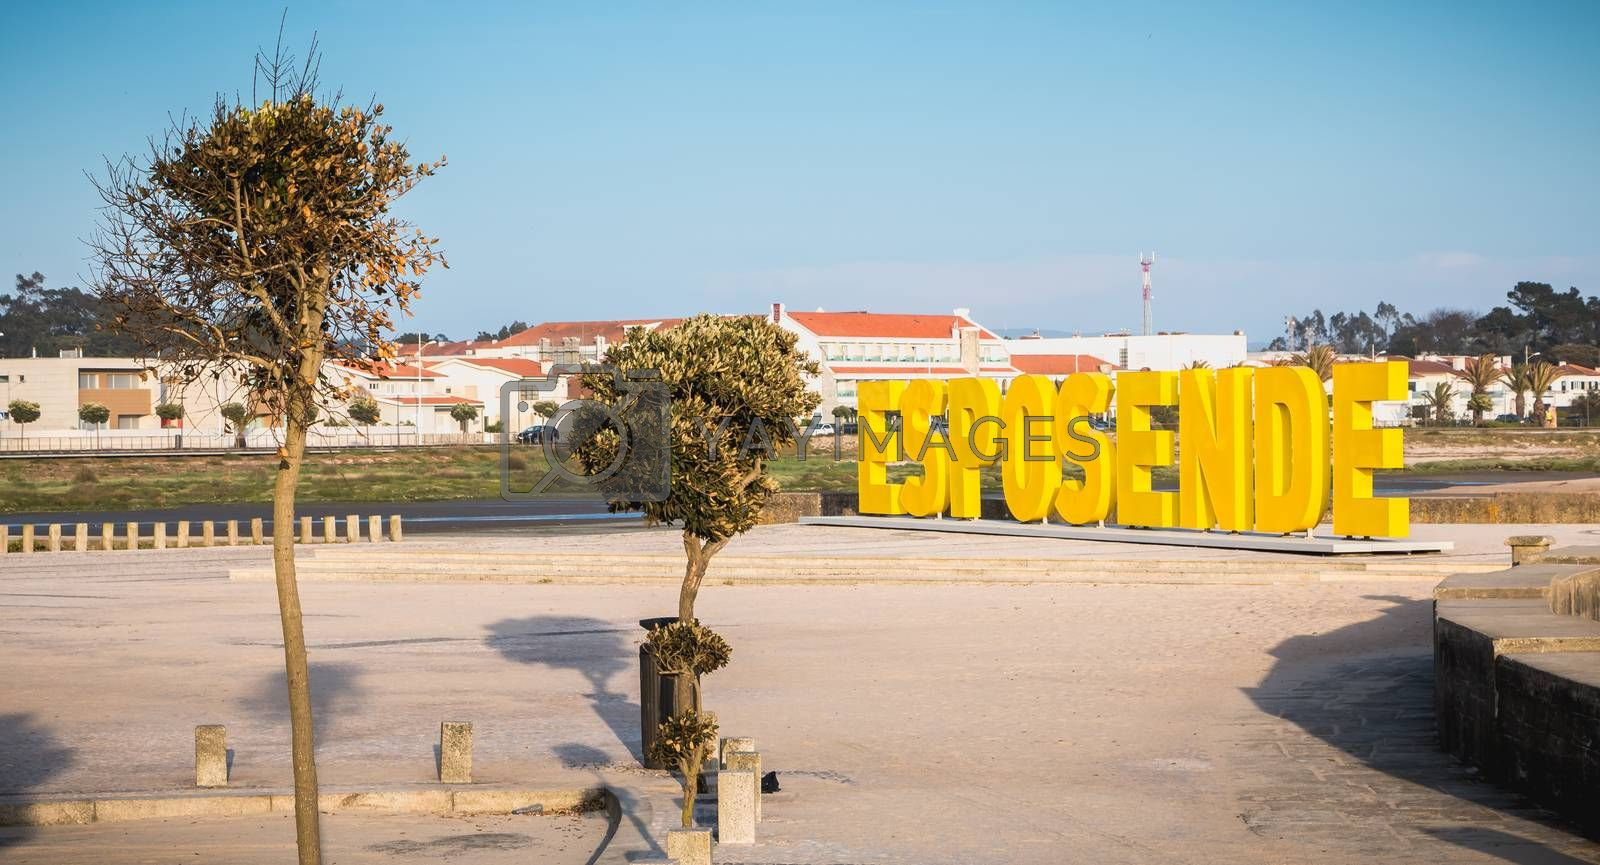 Esposende, Portugal - May 8, 2018: Big yellow block letters spelling Esposende on the beach on a spring day